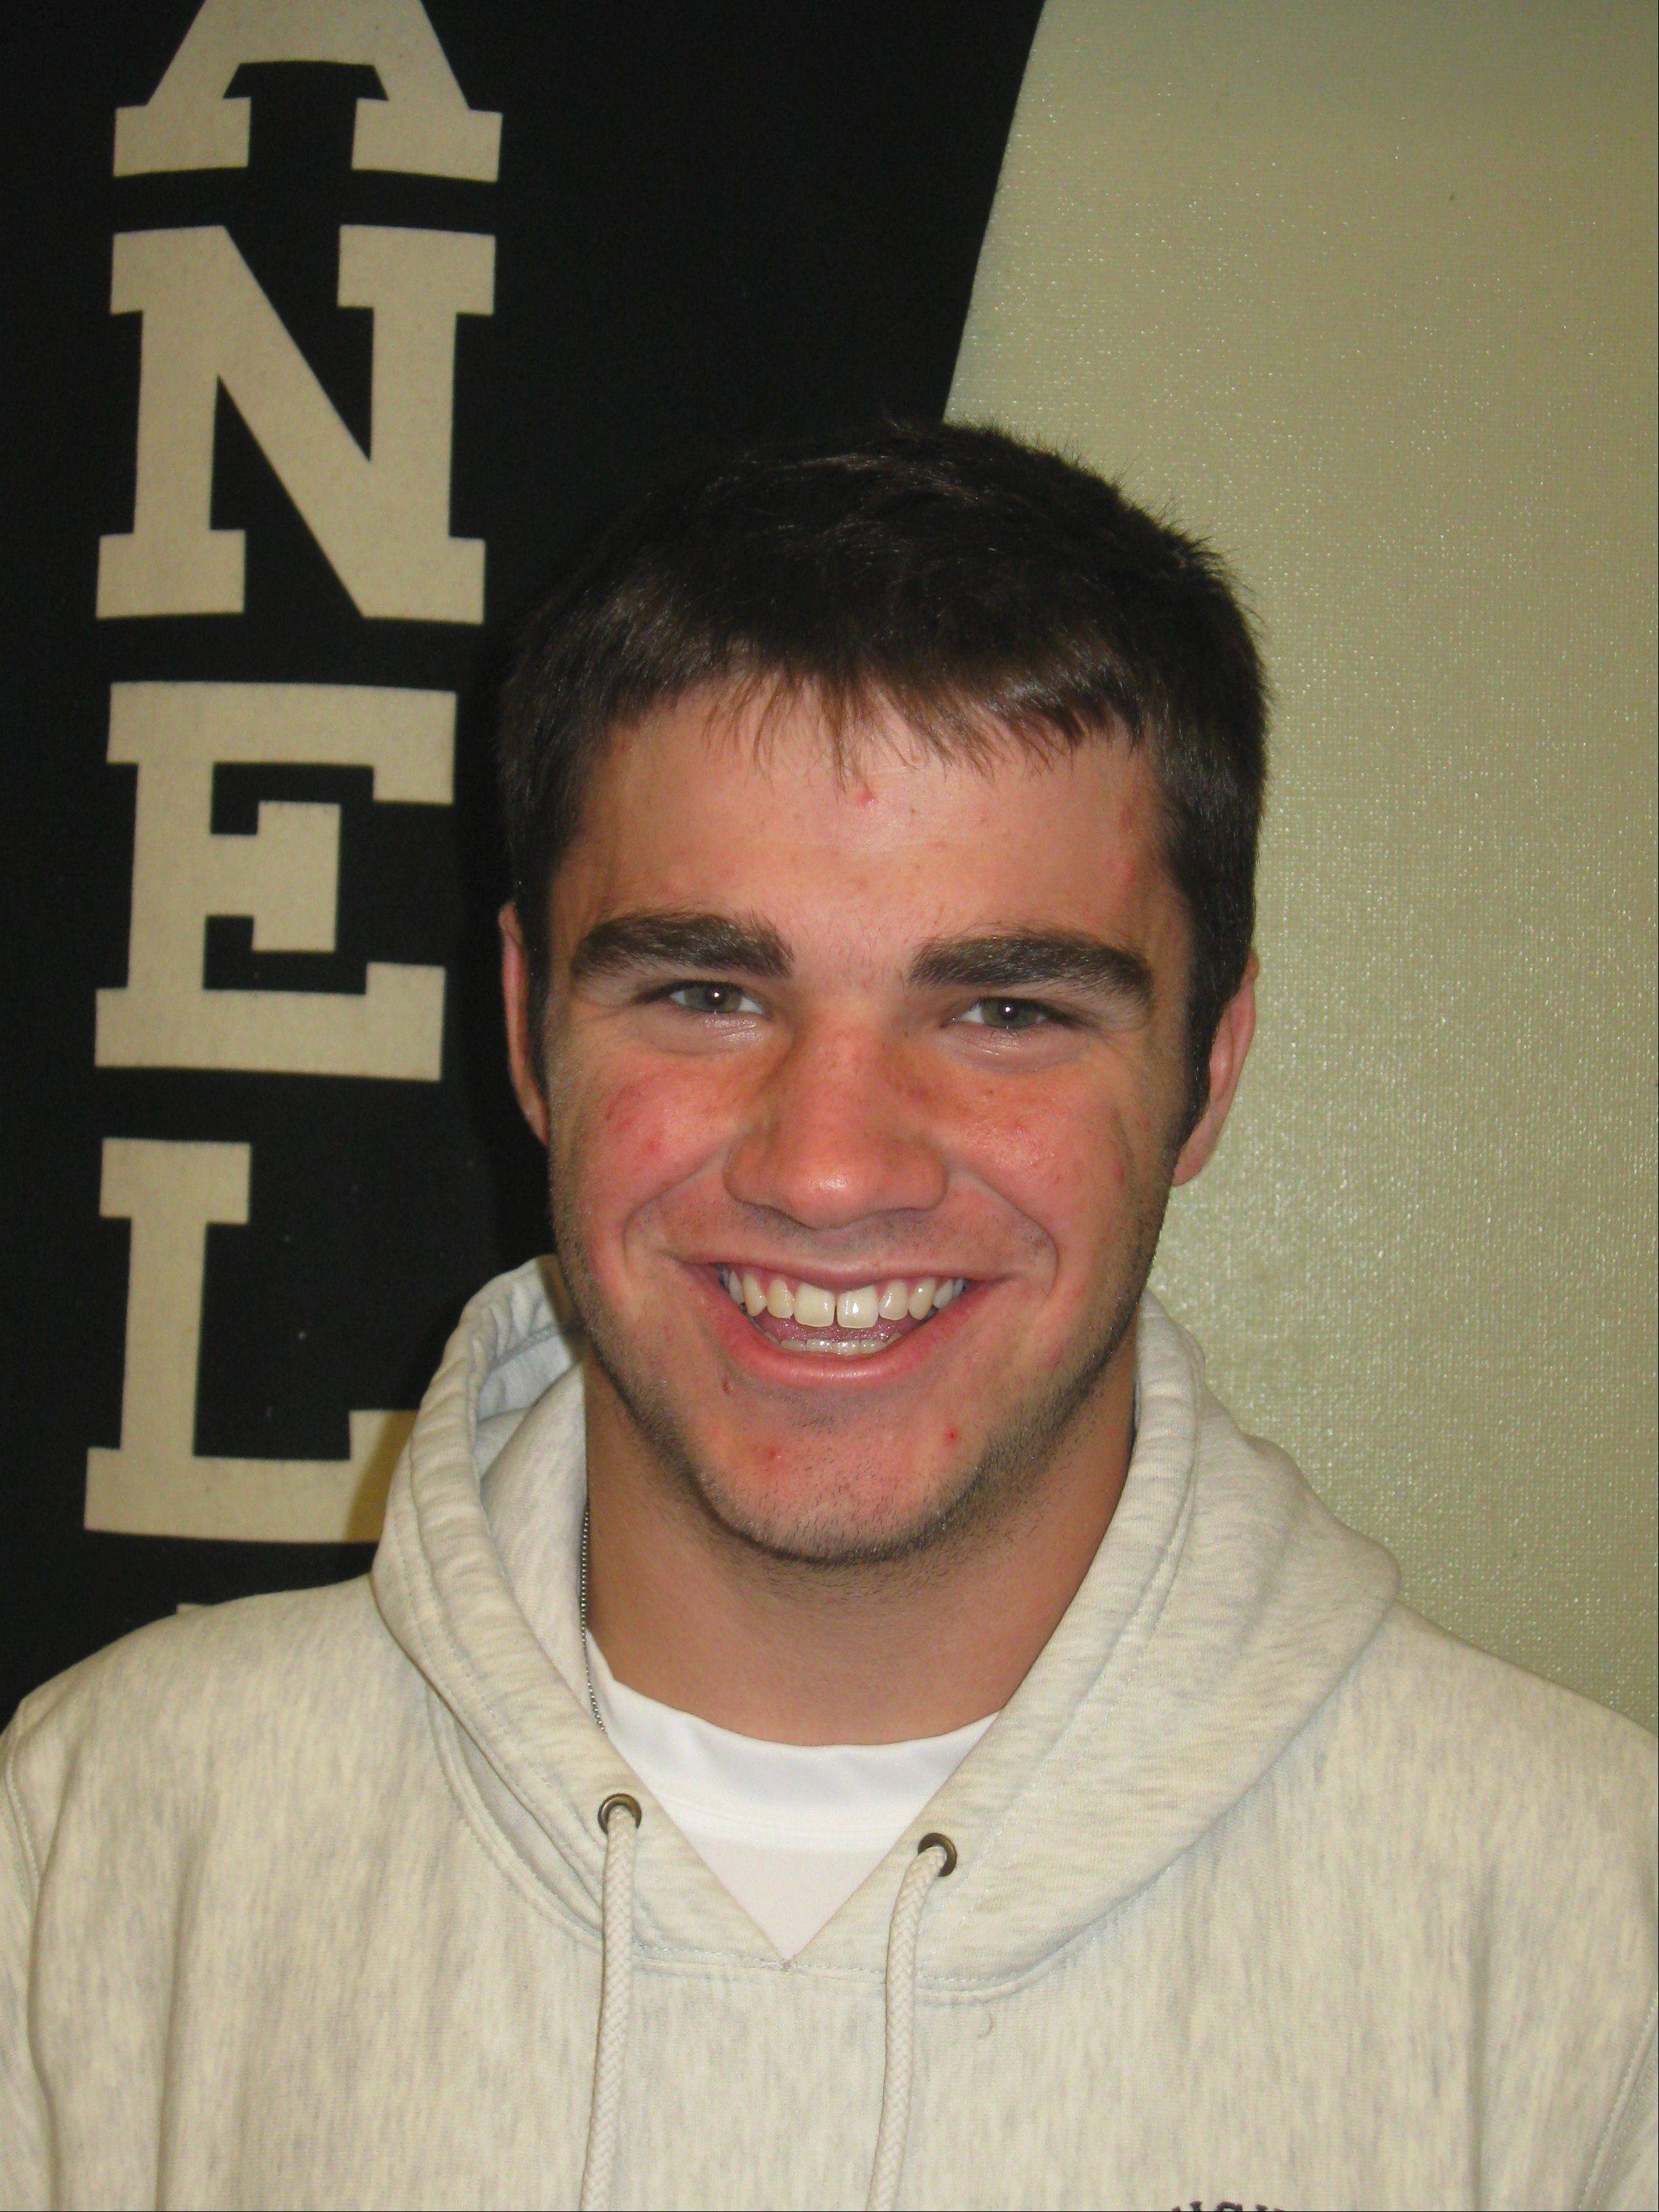 Zack Martinelli, Kaneland football